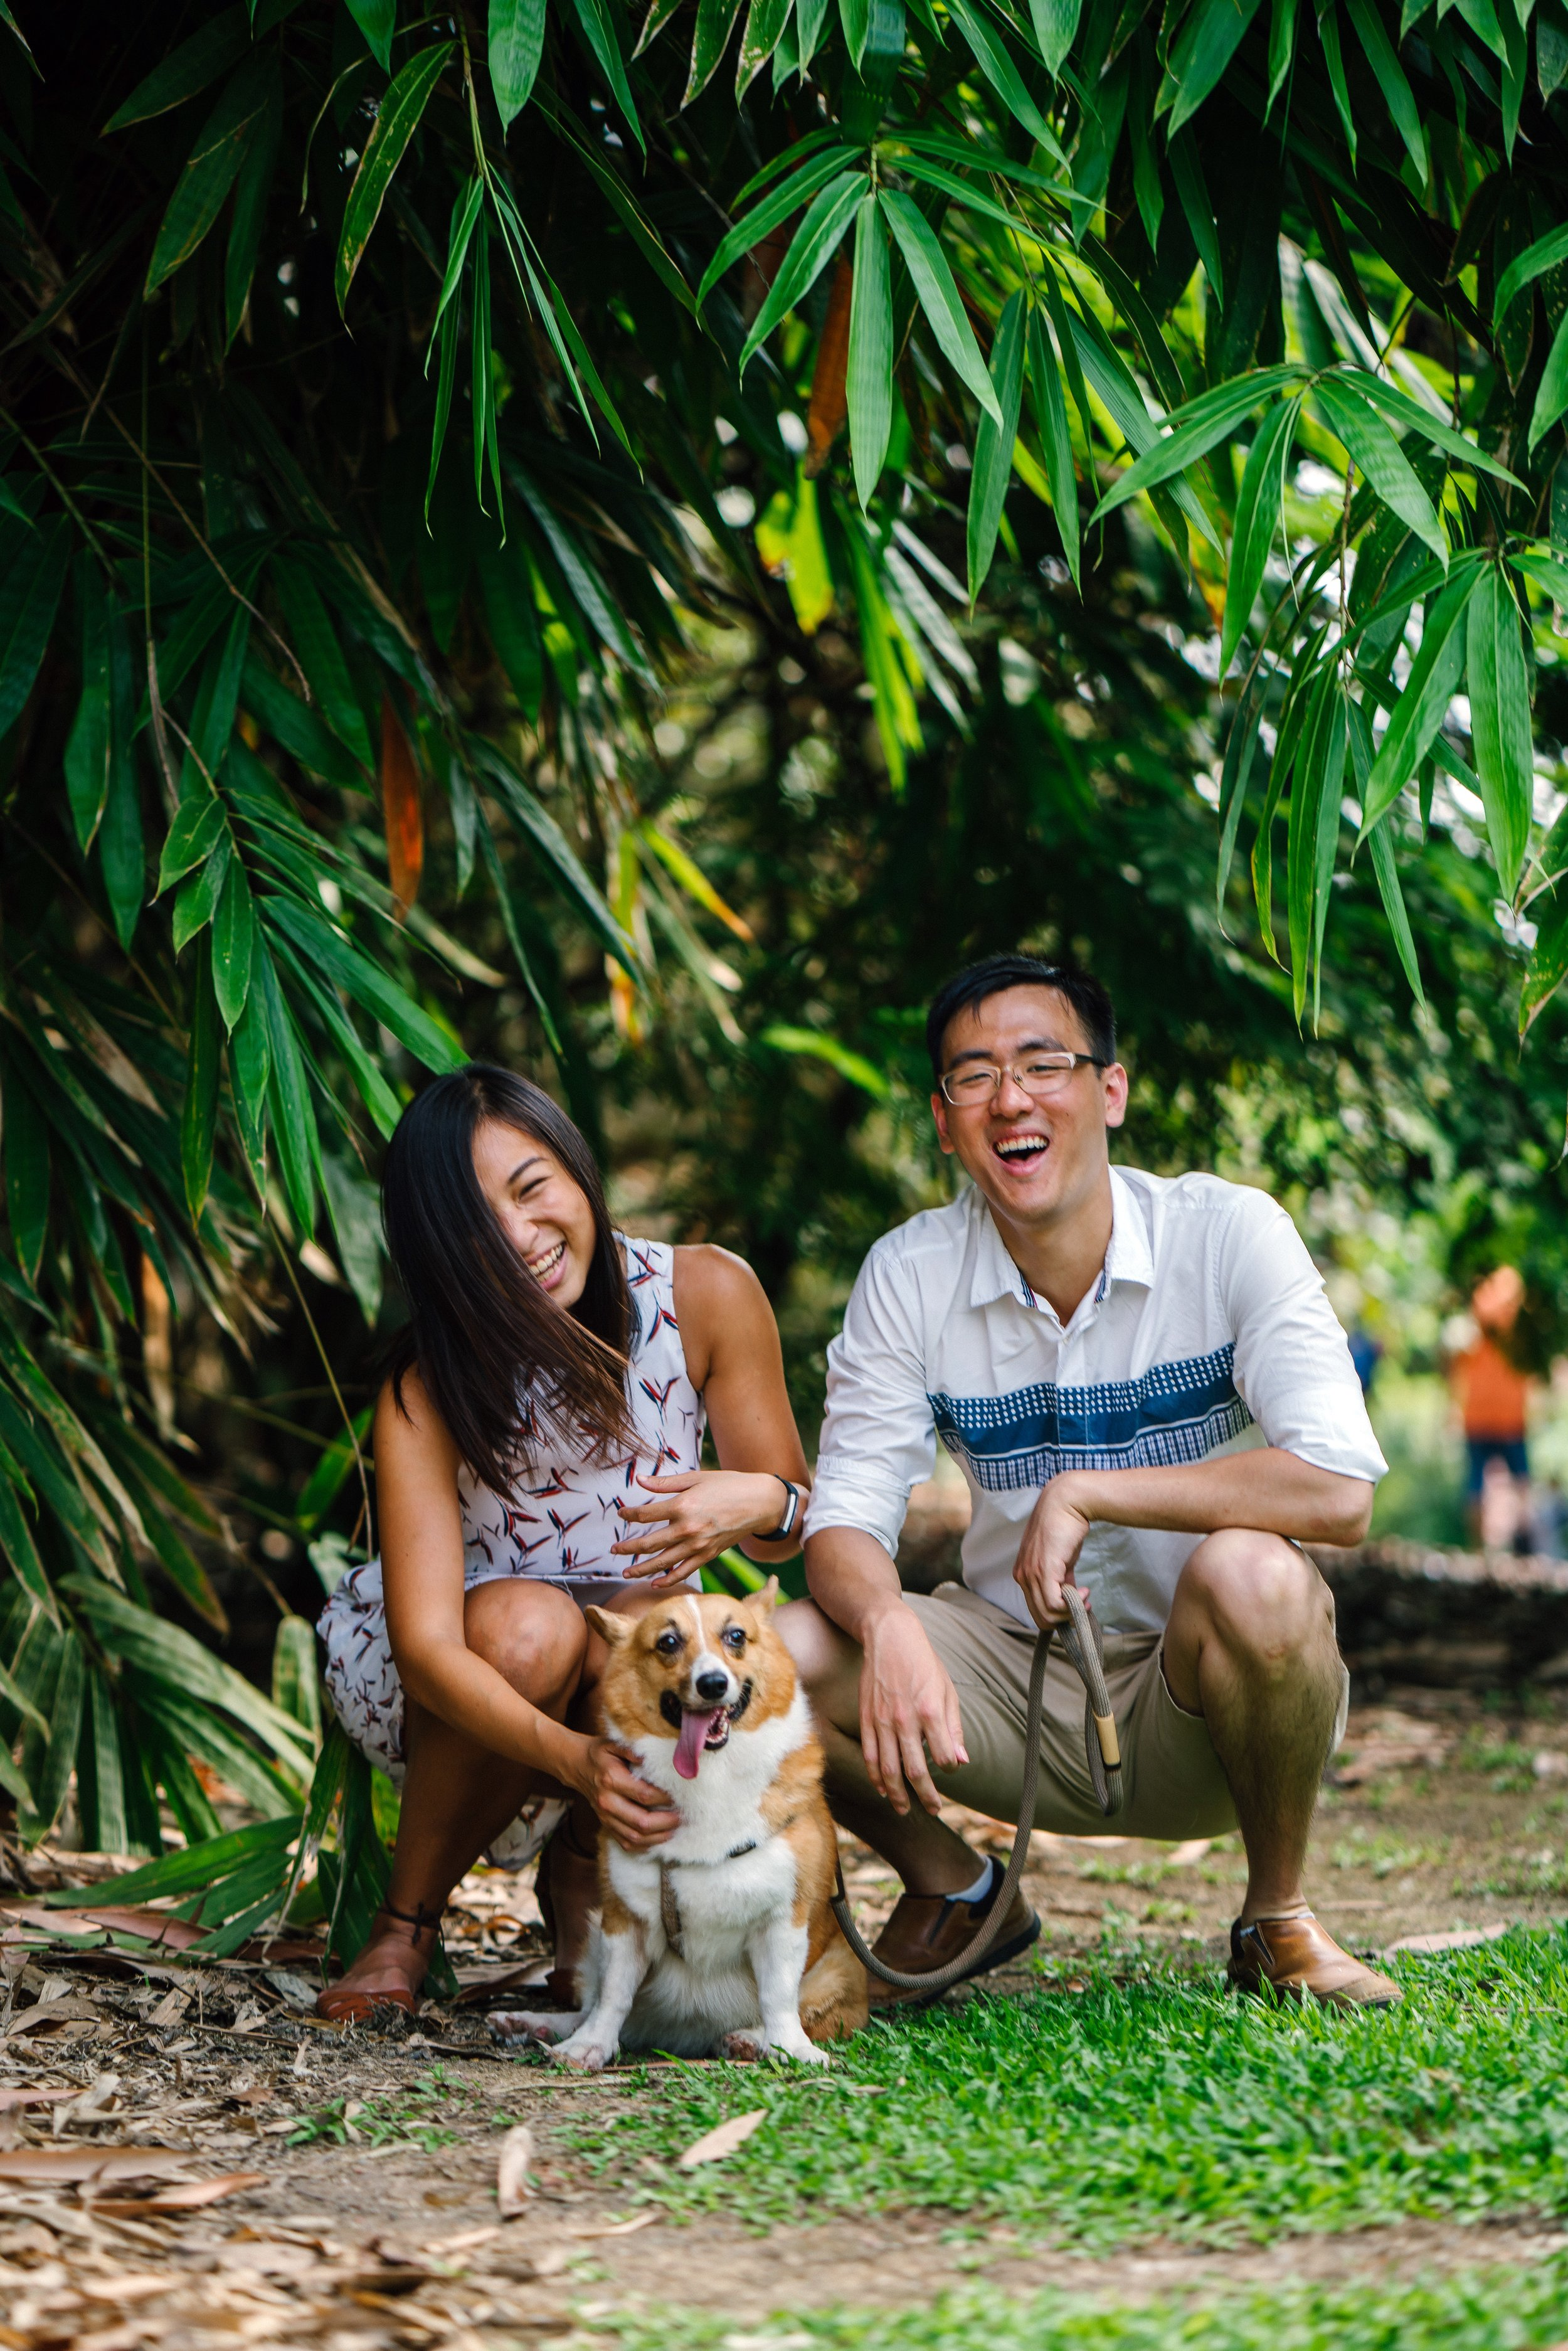 Good dogs befriend good people. - Socialization is crucial for all of us, but especially pups. Use paw to find a weekend walk buddy or if you need your own dog entertained a few extra times a month or during travel.Start making dog care friends →